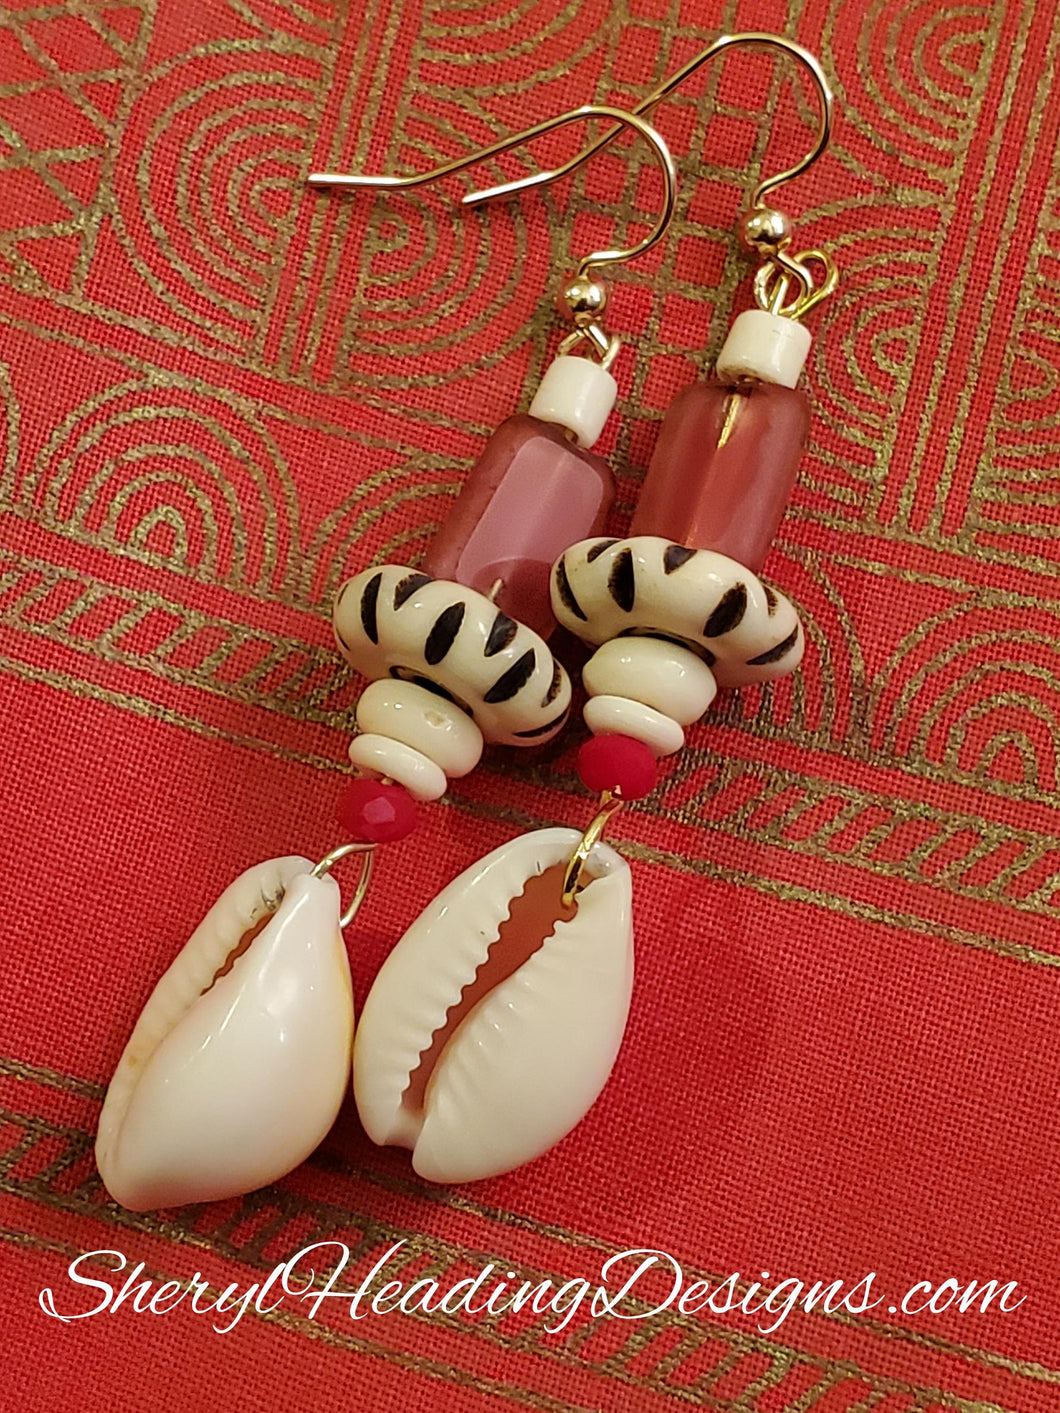 Cowrie Shell Dangle Earrings with Red, Black and White Beads - Sheryl Heading Designs